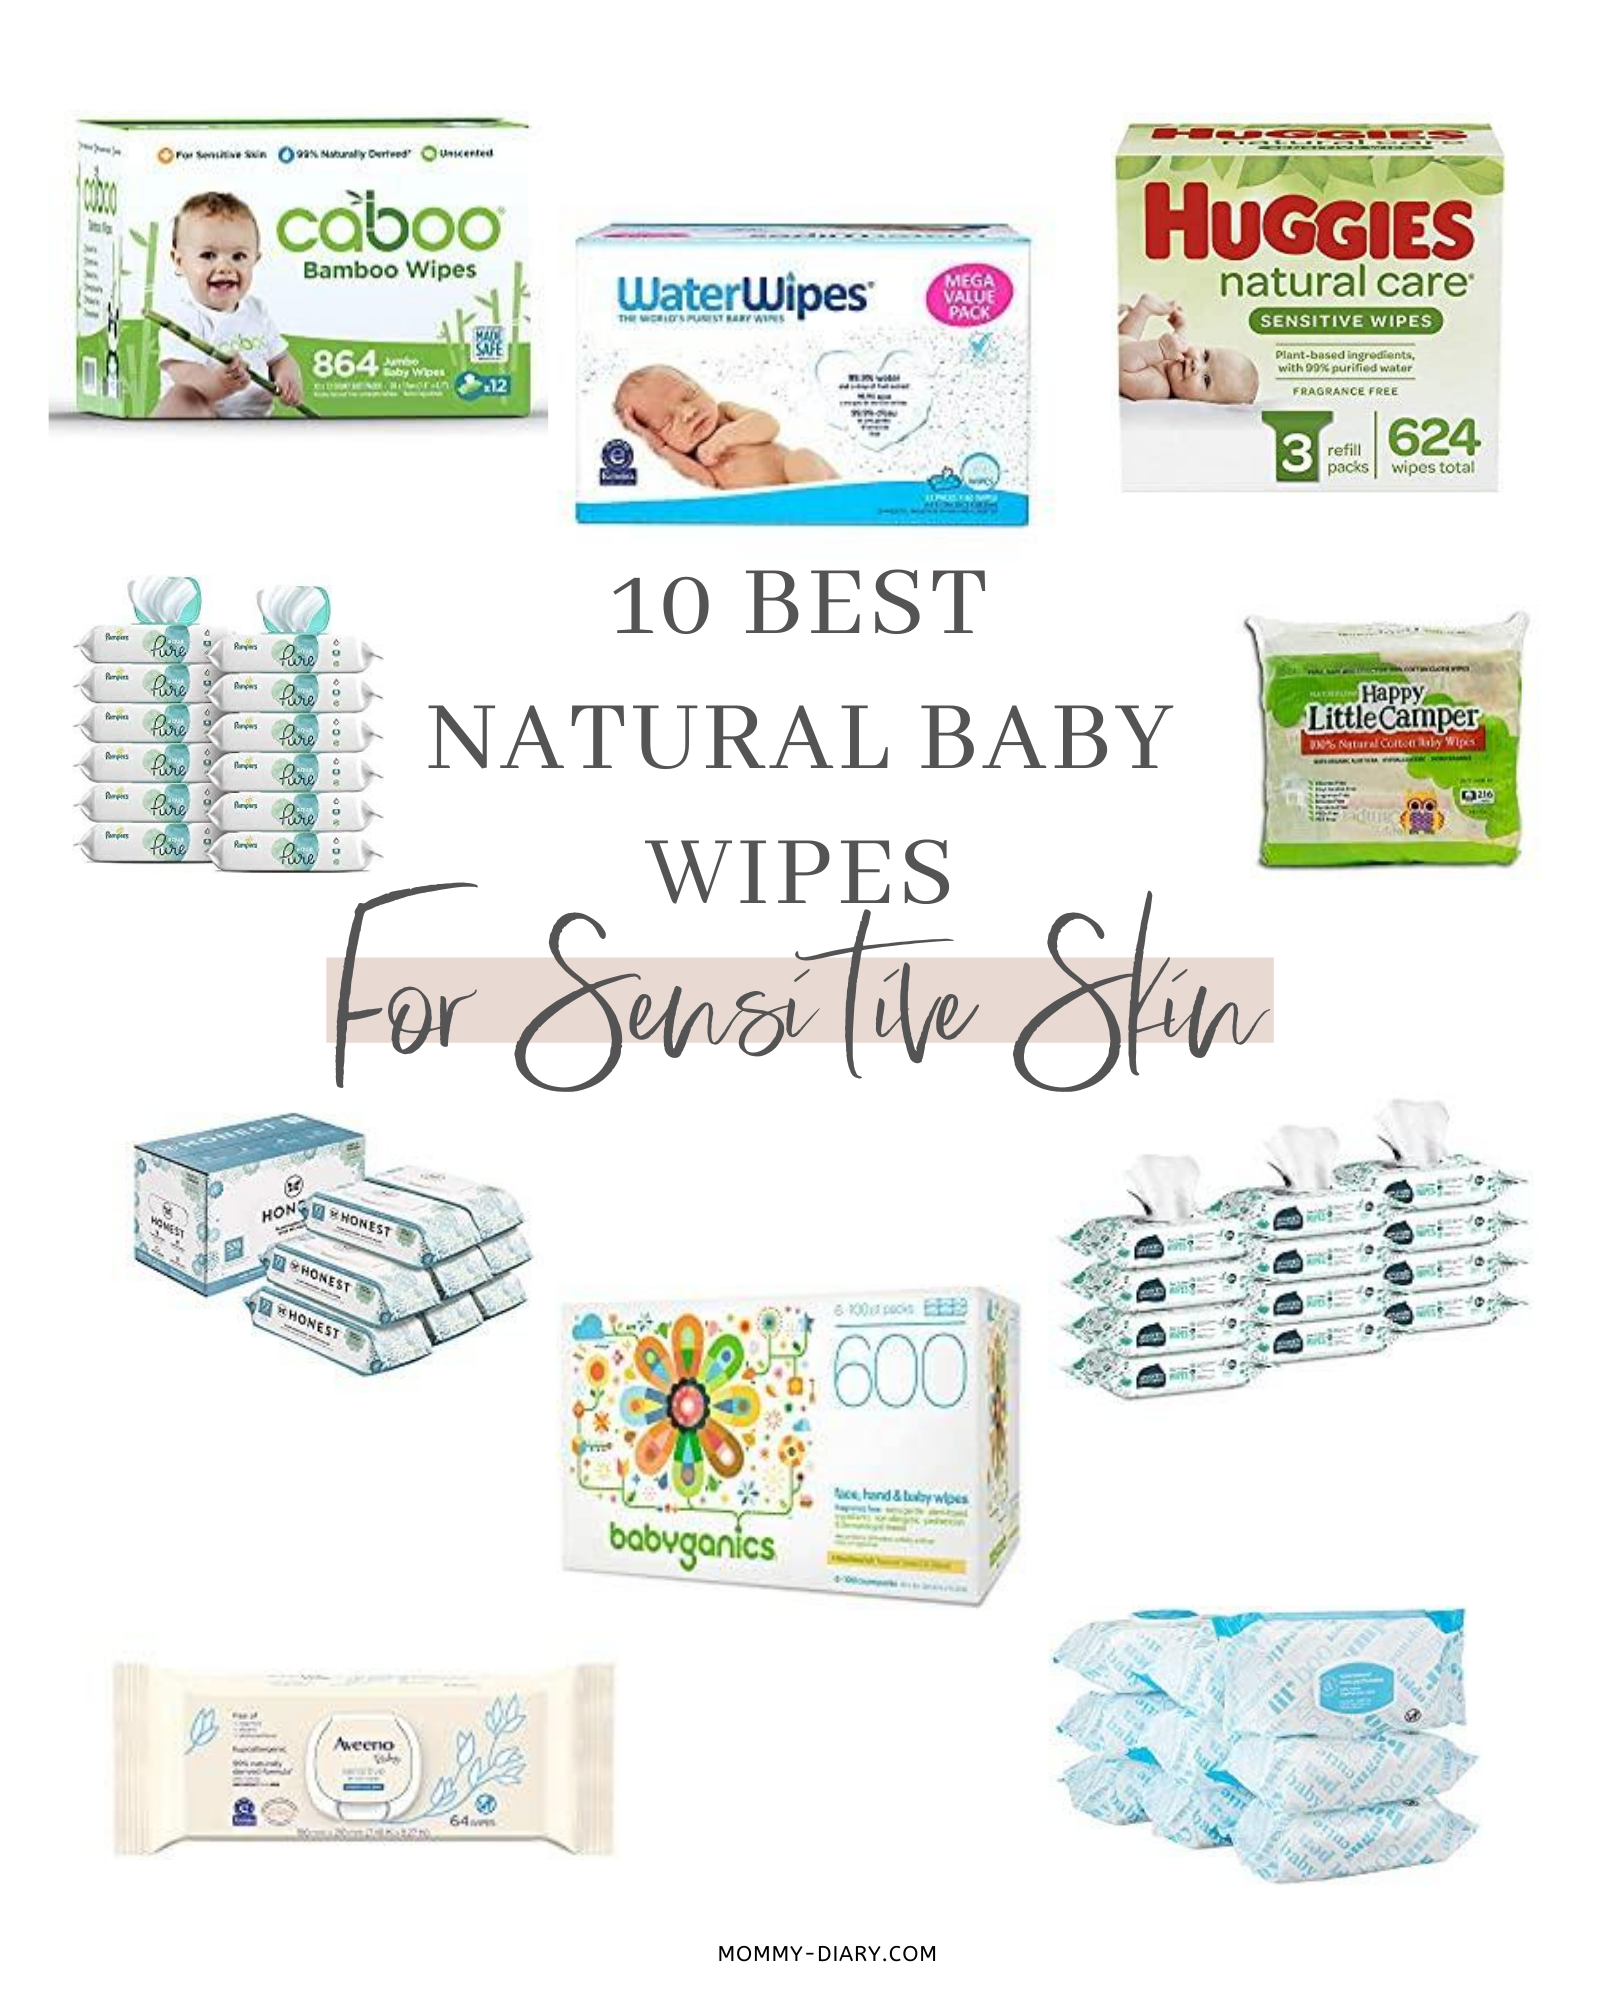 10 Best Natural Baby Wipes for Sensitive Skin